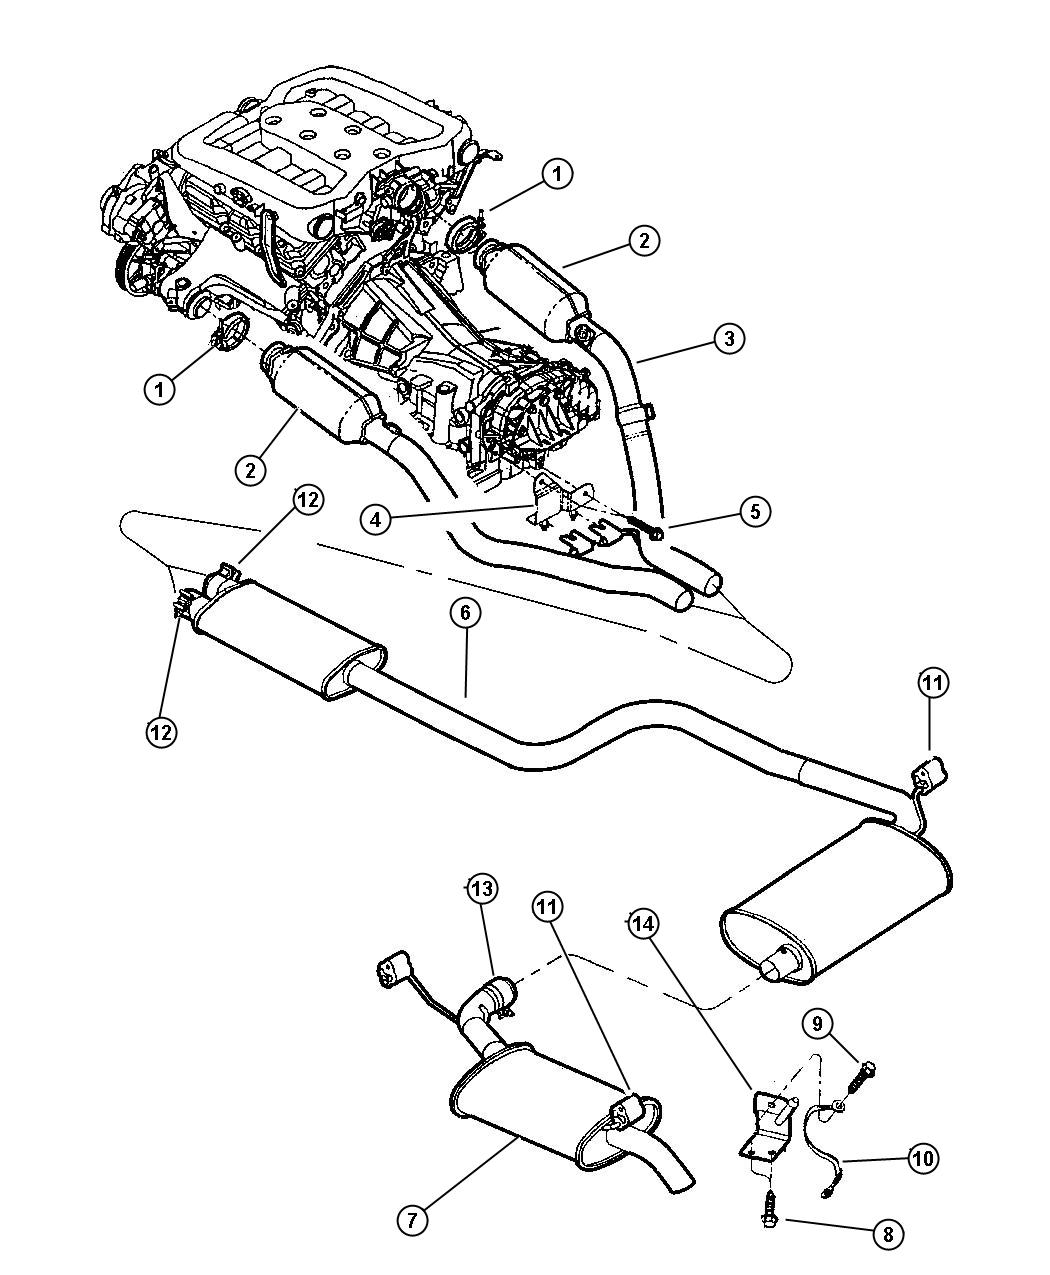 1999 Chrysler 300m Module Diagram, 1999, Free Engine Image